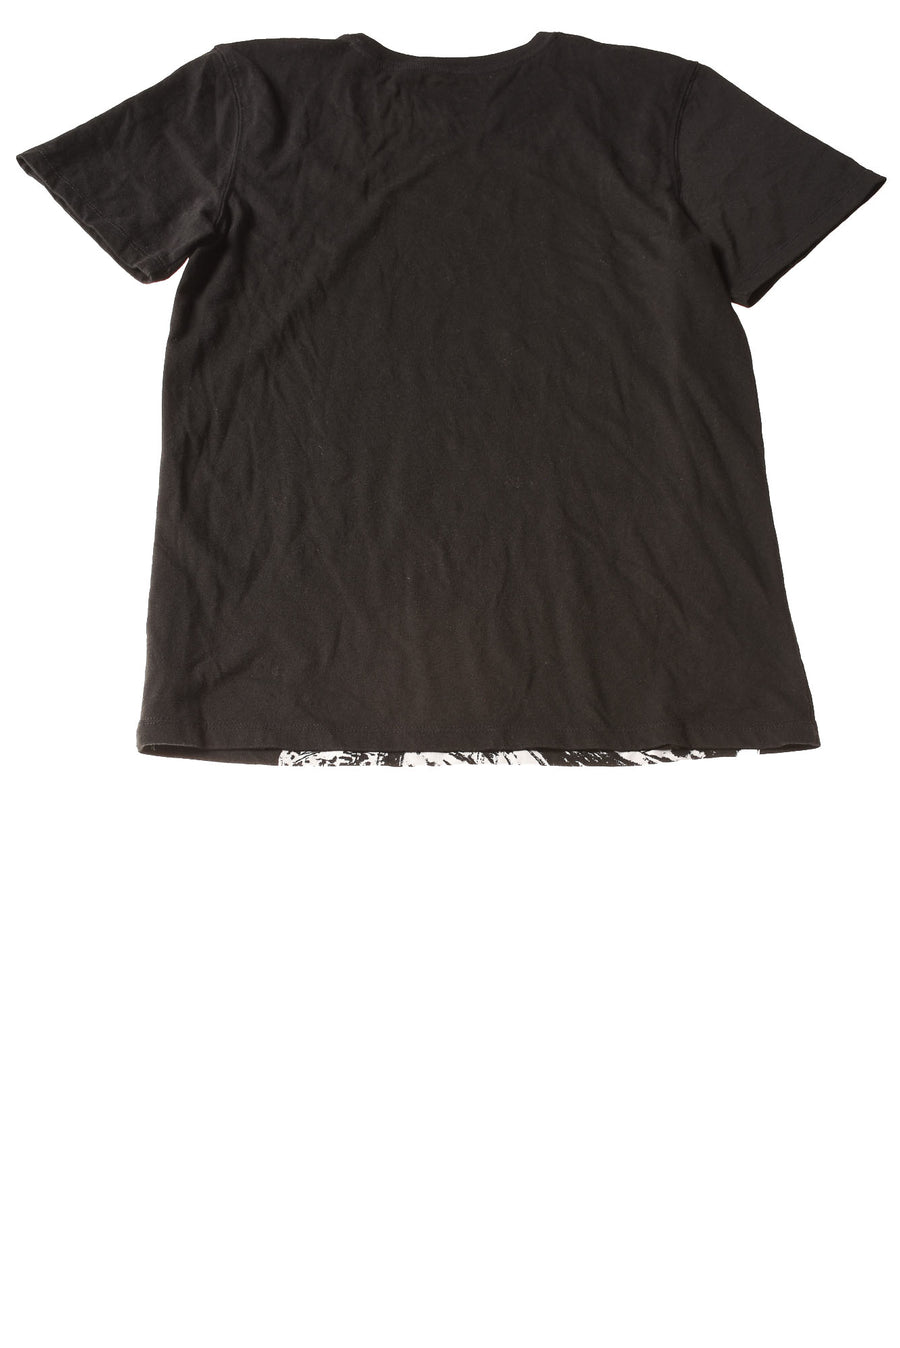 USED Gap Kids Boy's Shirt XX-Large Black / Print